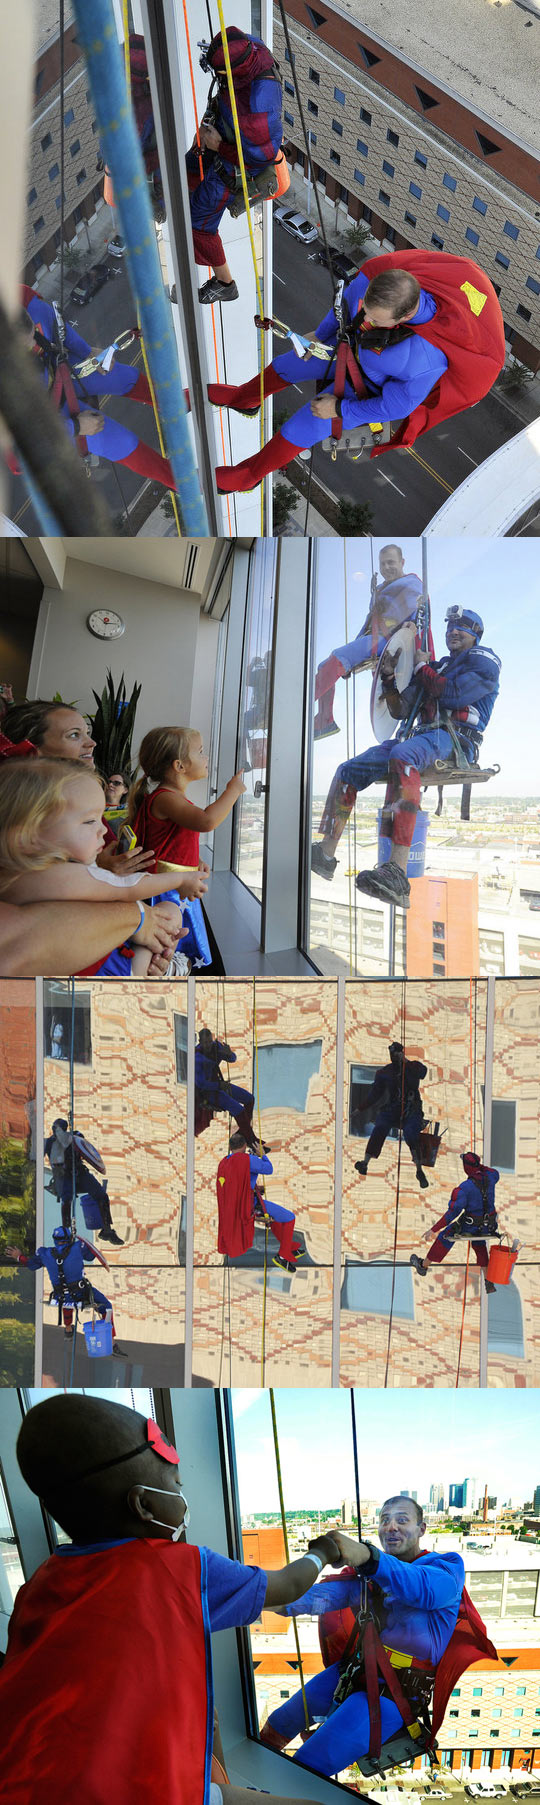 cool-window-washers-superheroes-childrens-hospital